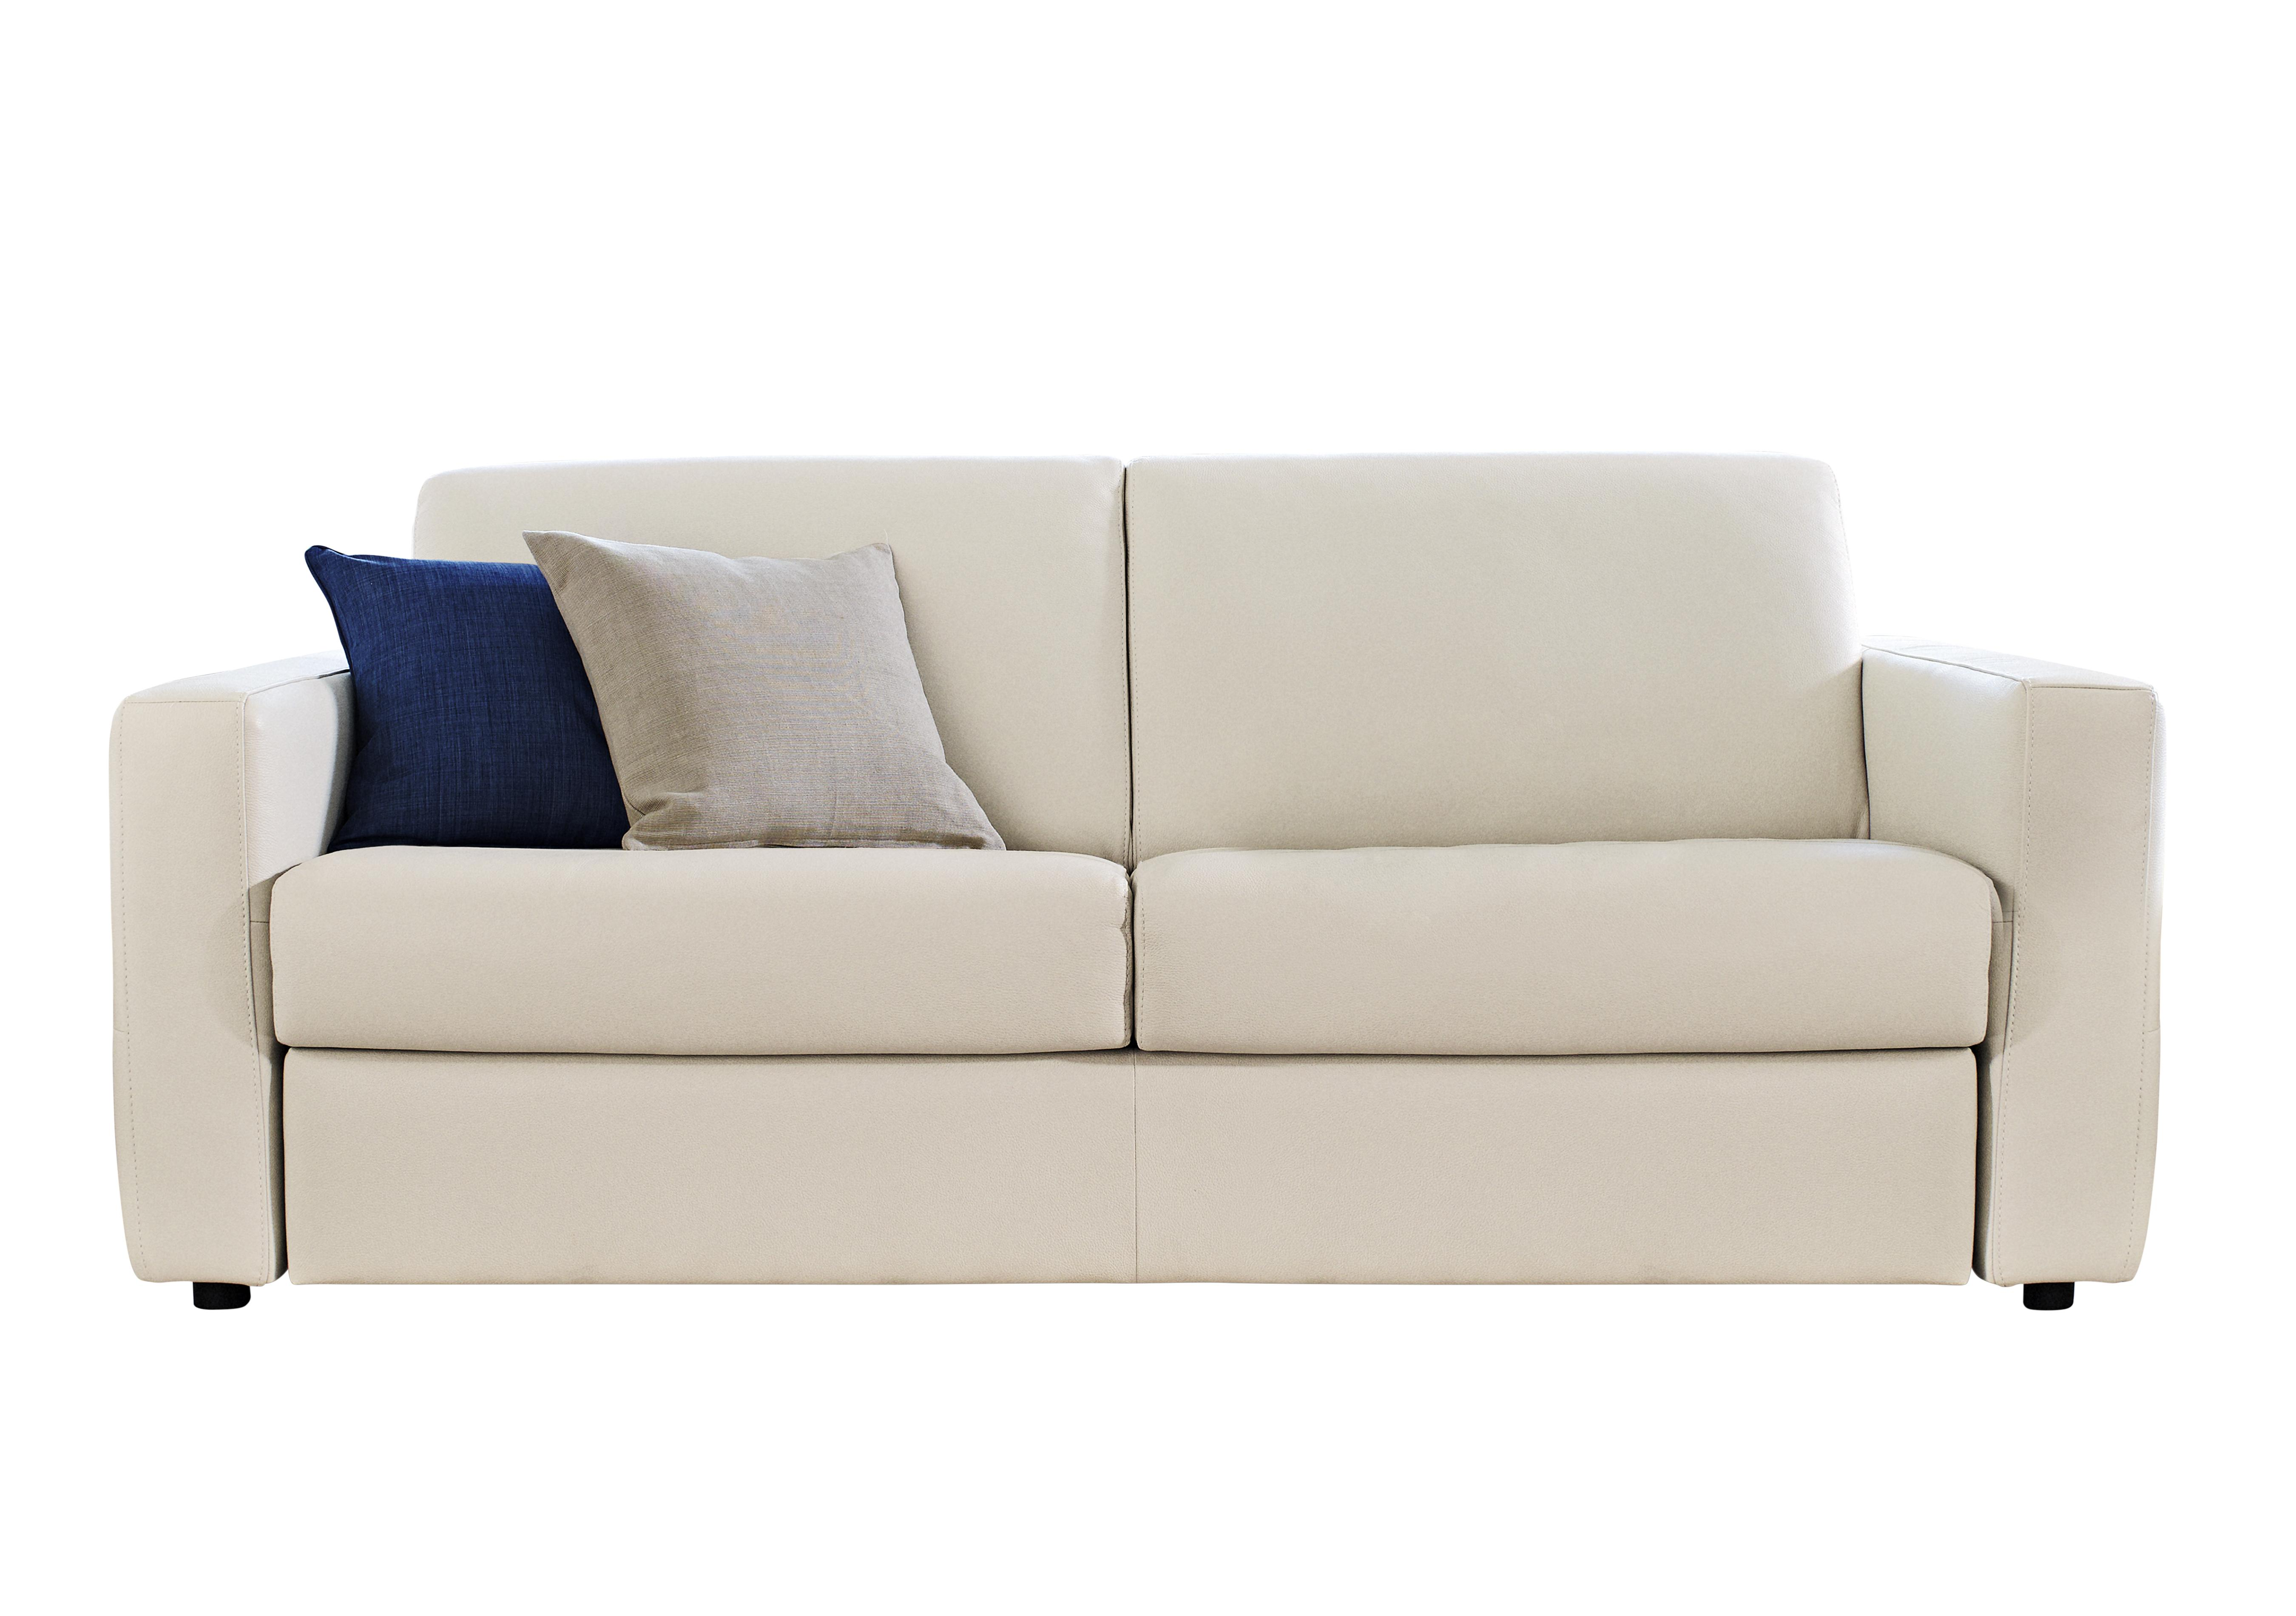 white leather sofa furniture village barker and stonehouse sofas